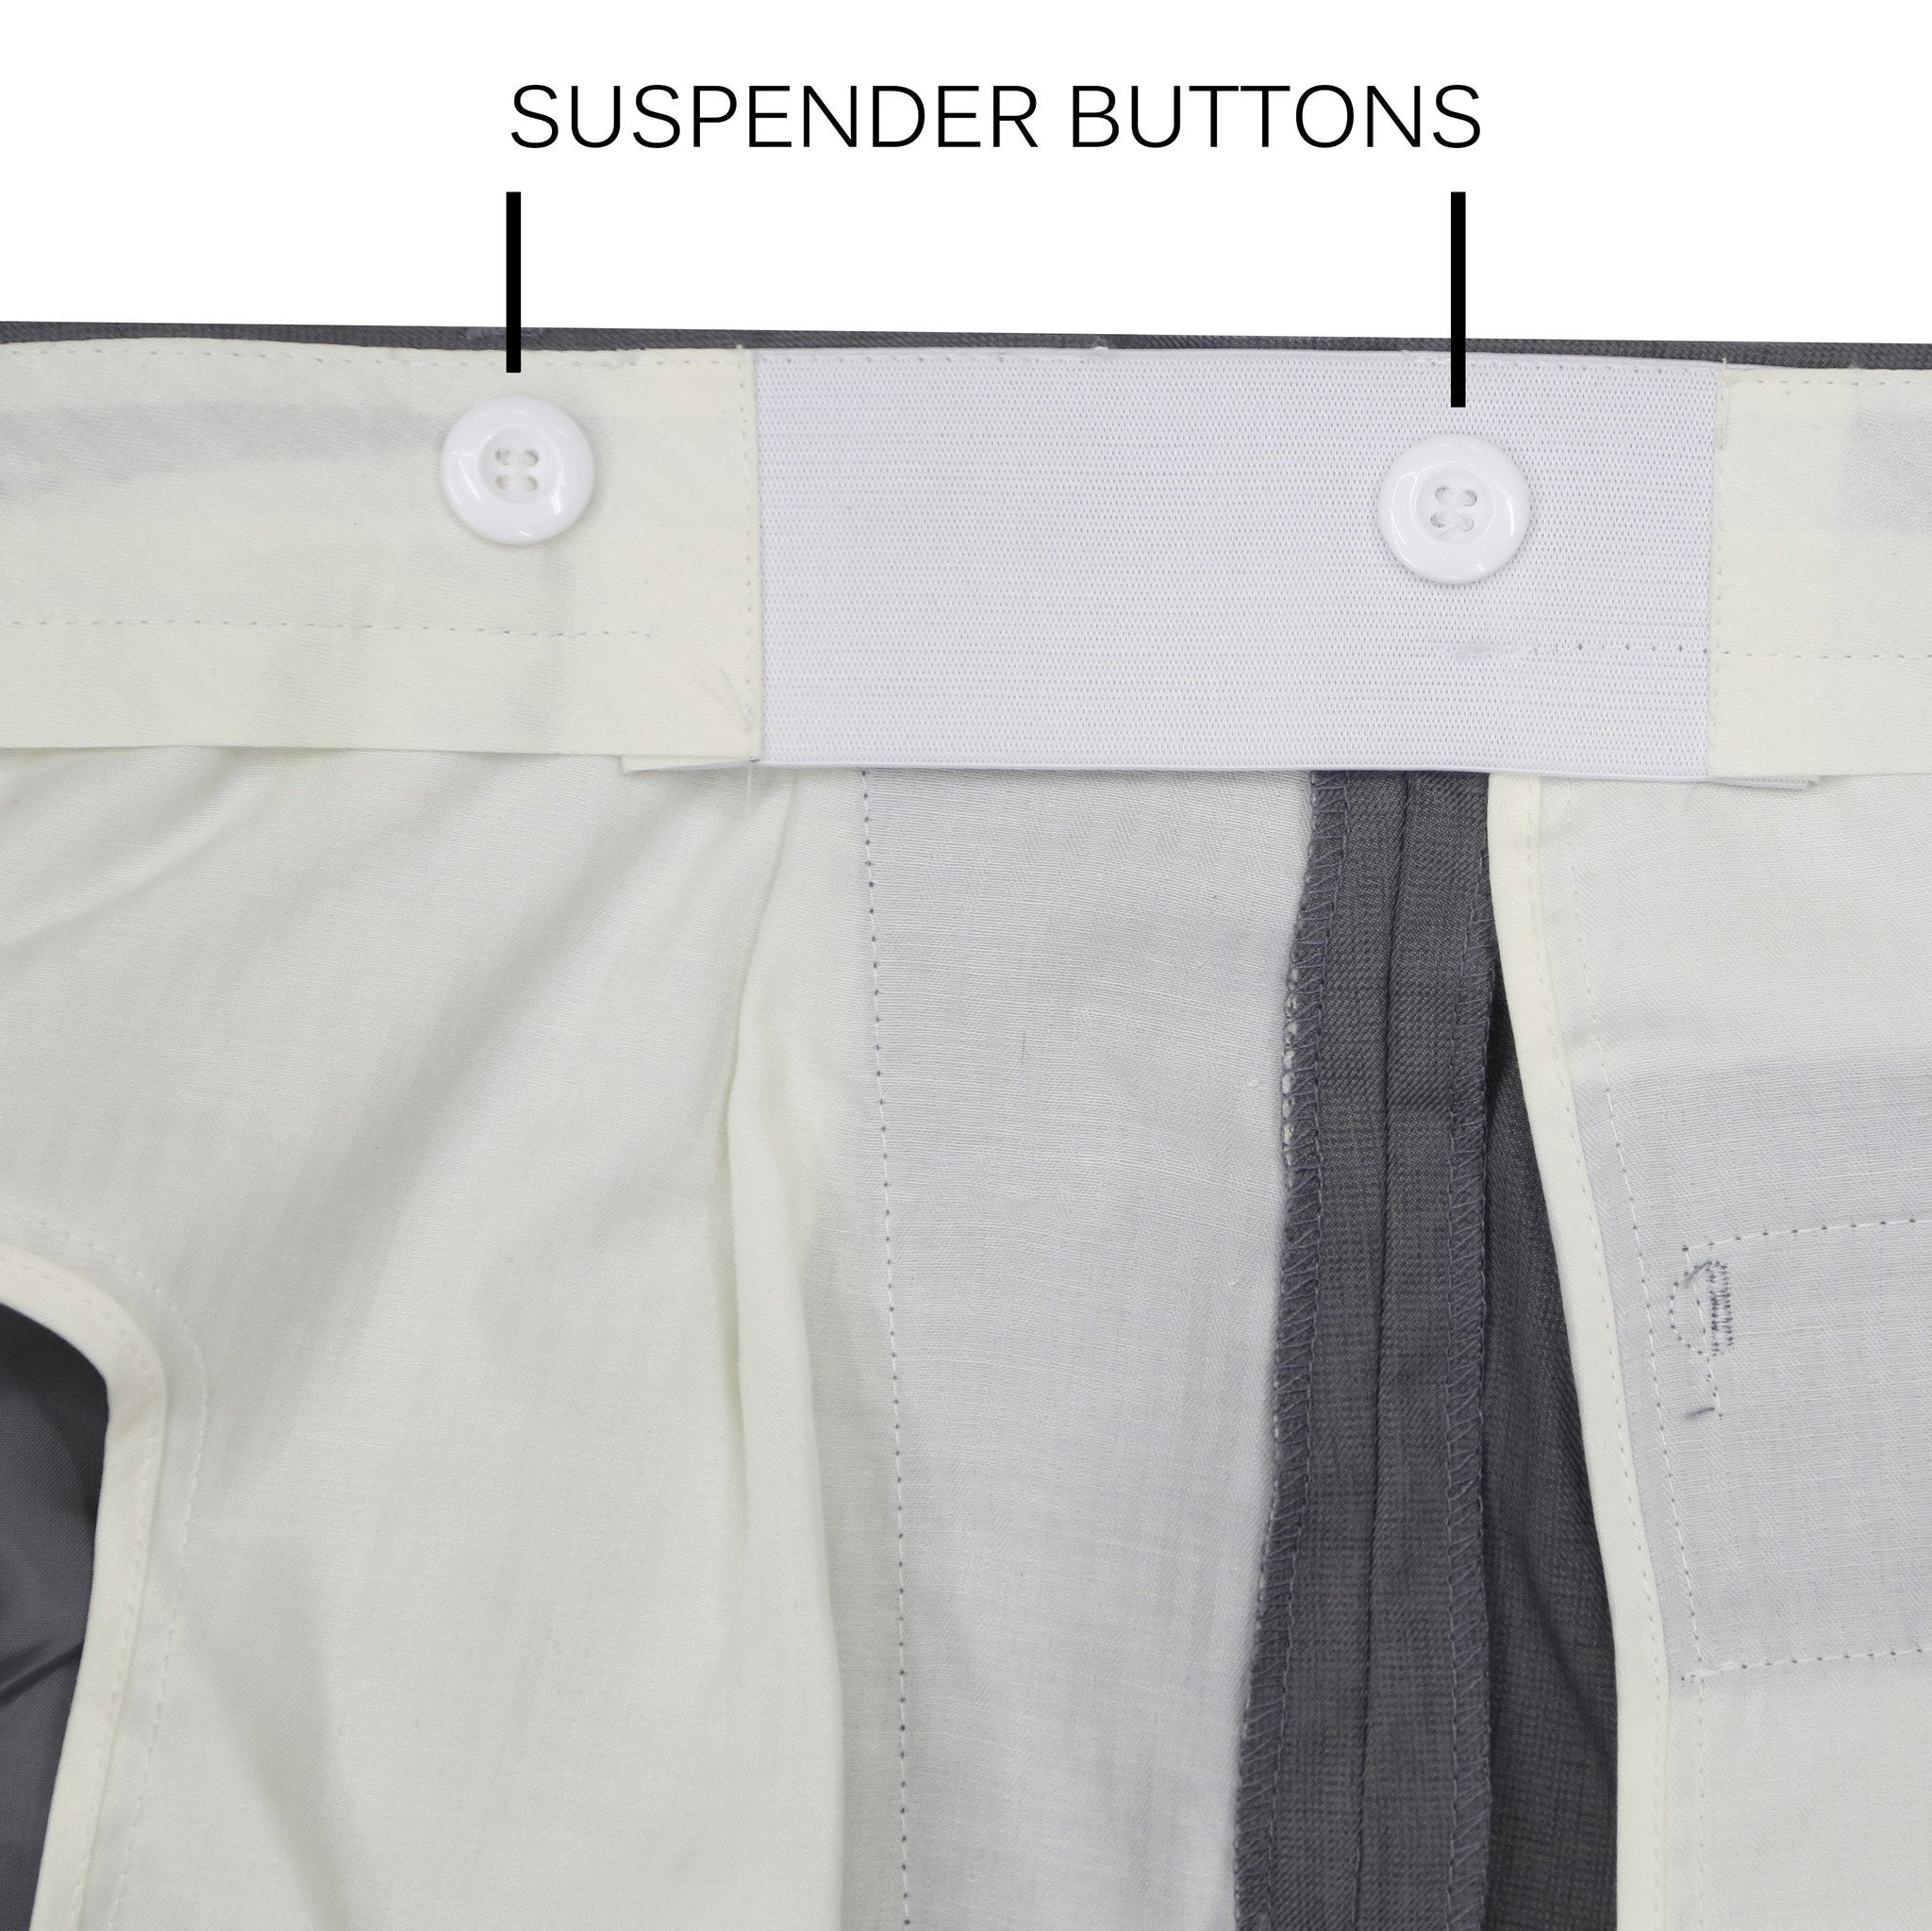 Premium Grey Regular Fit Suspender Ready Formal & Business Pants - Giorgio's Menswear